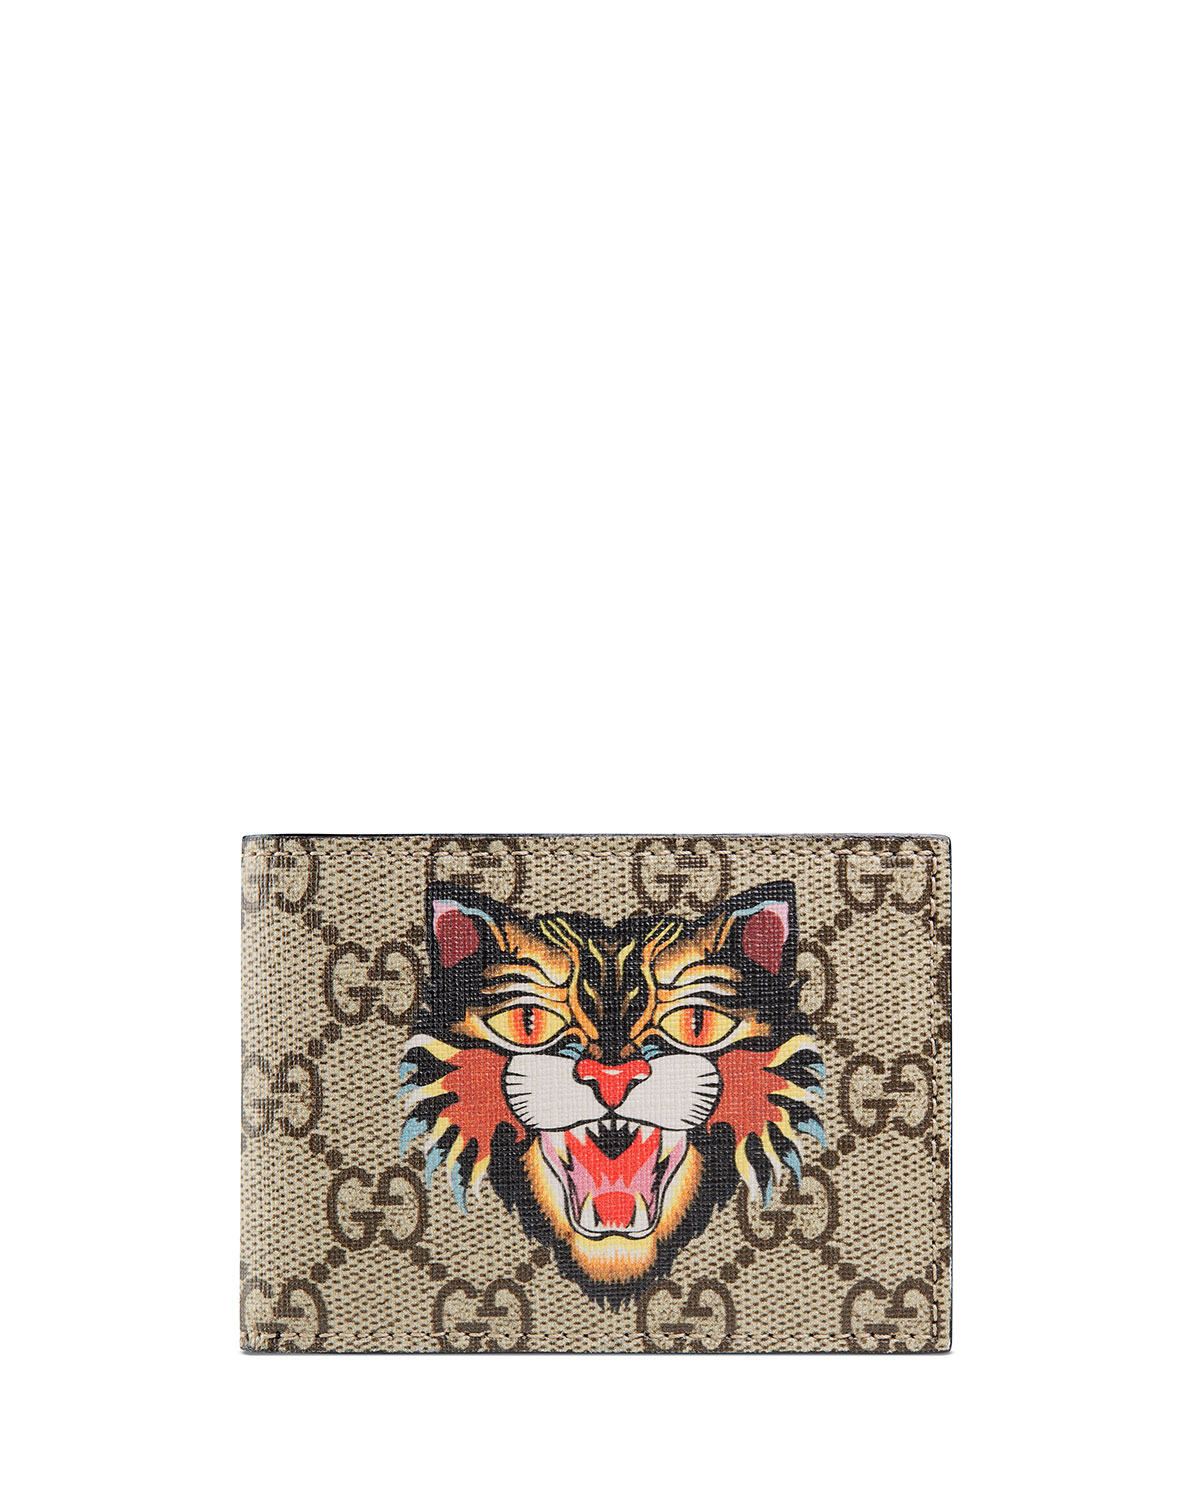 92055d3b8139 Gucci Angry Cat GG Supreme Wallet | Neiman Marcus